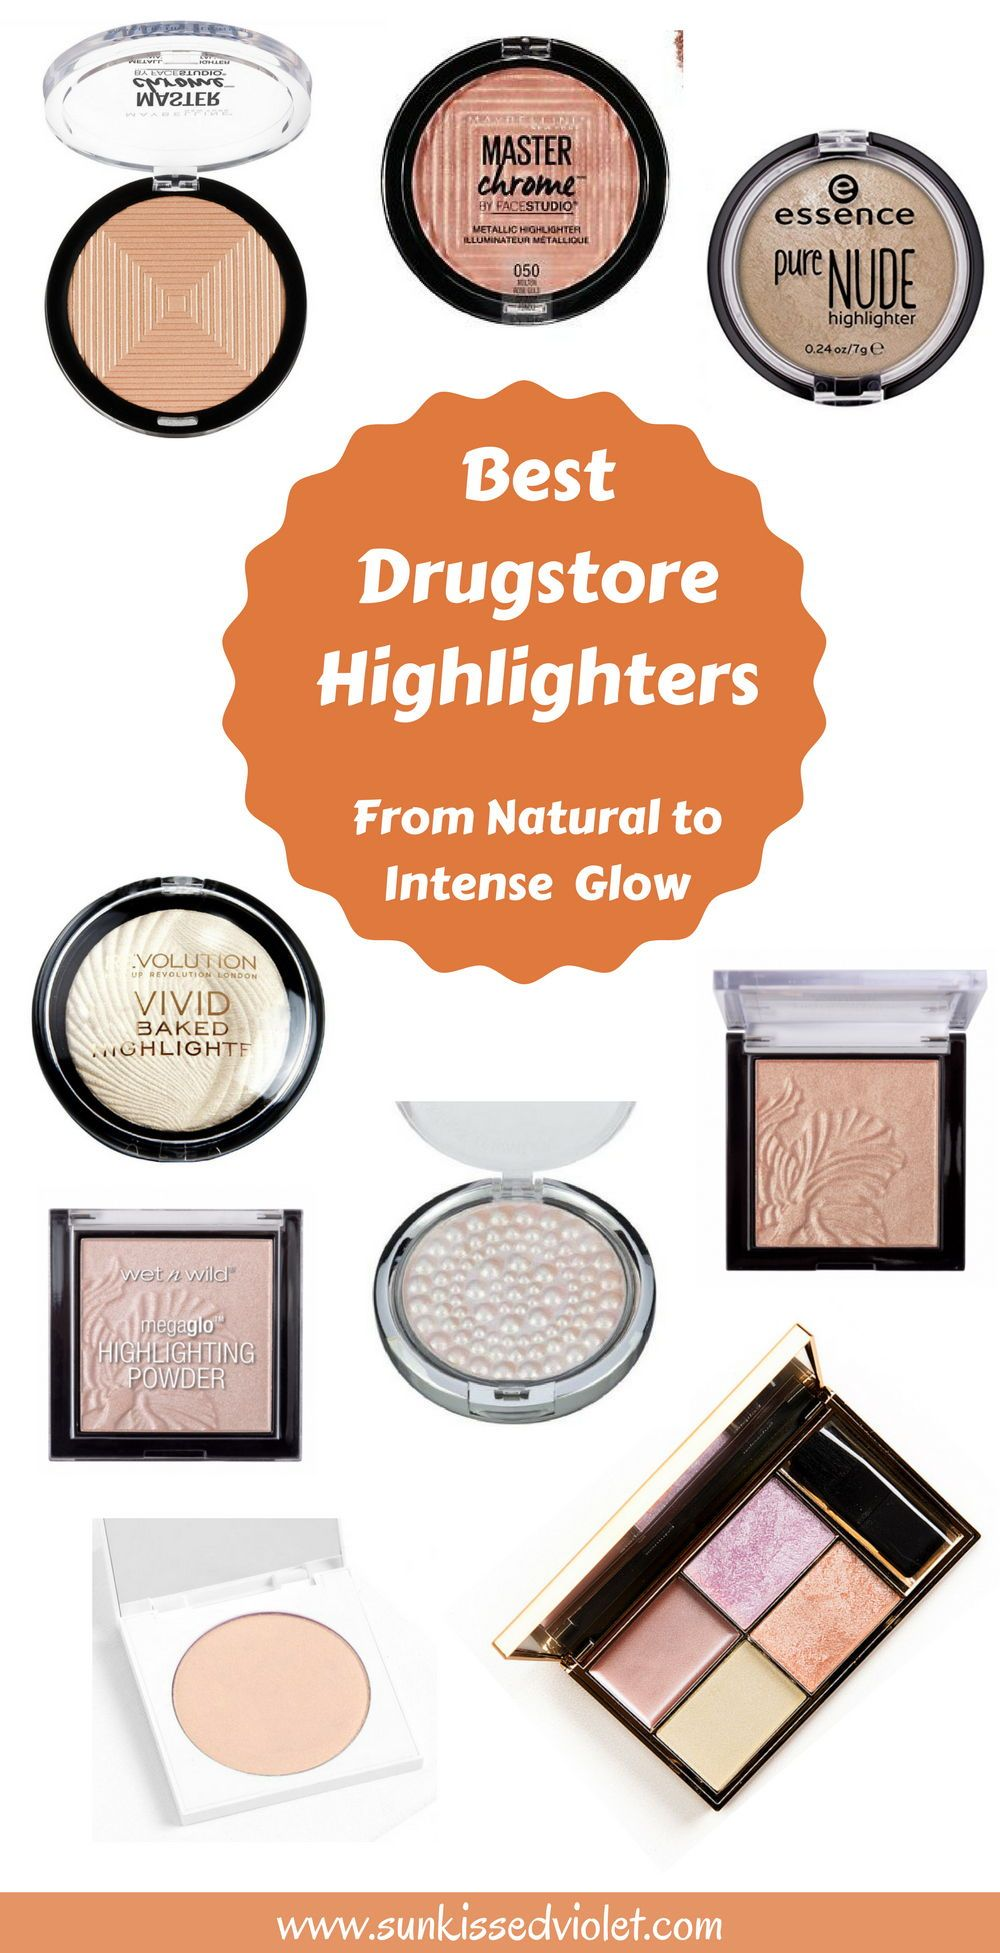 Best Drugstore Highlighters From Natural To Intense Glow Cosmetics Drugstoremakeup Highlighte Drugstore Highlighter Best Highlighter Makeup Best Highlighter